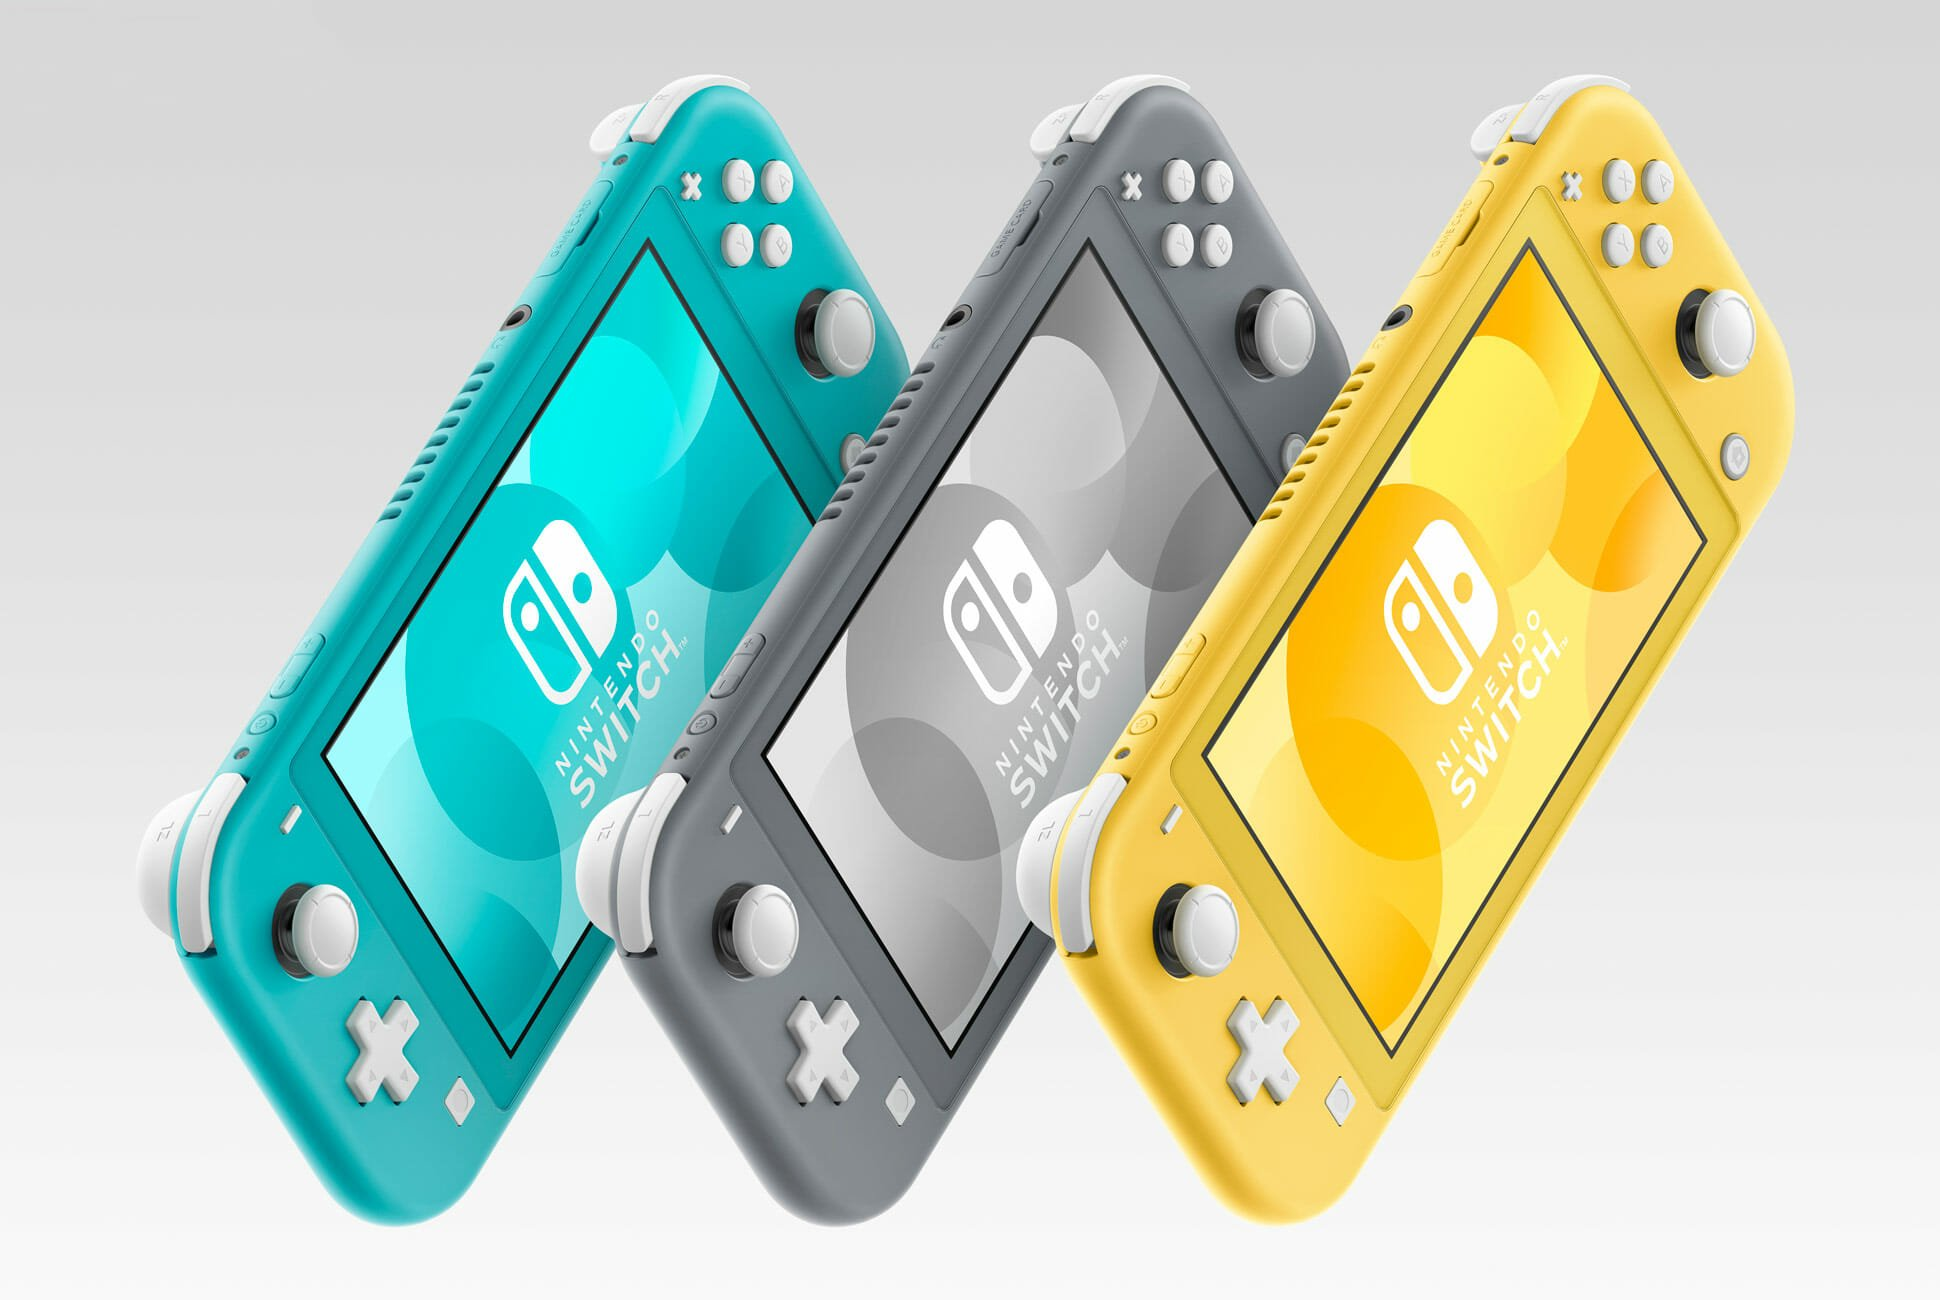 Video shows possible drift issues already arising with the Nintendo Switch Lite